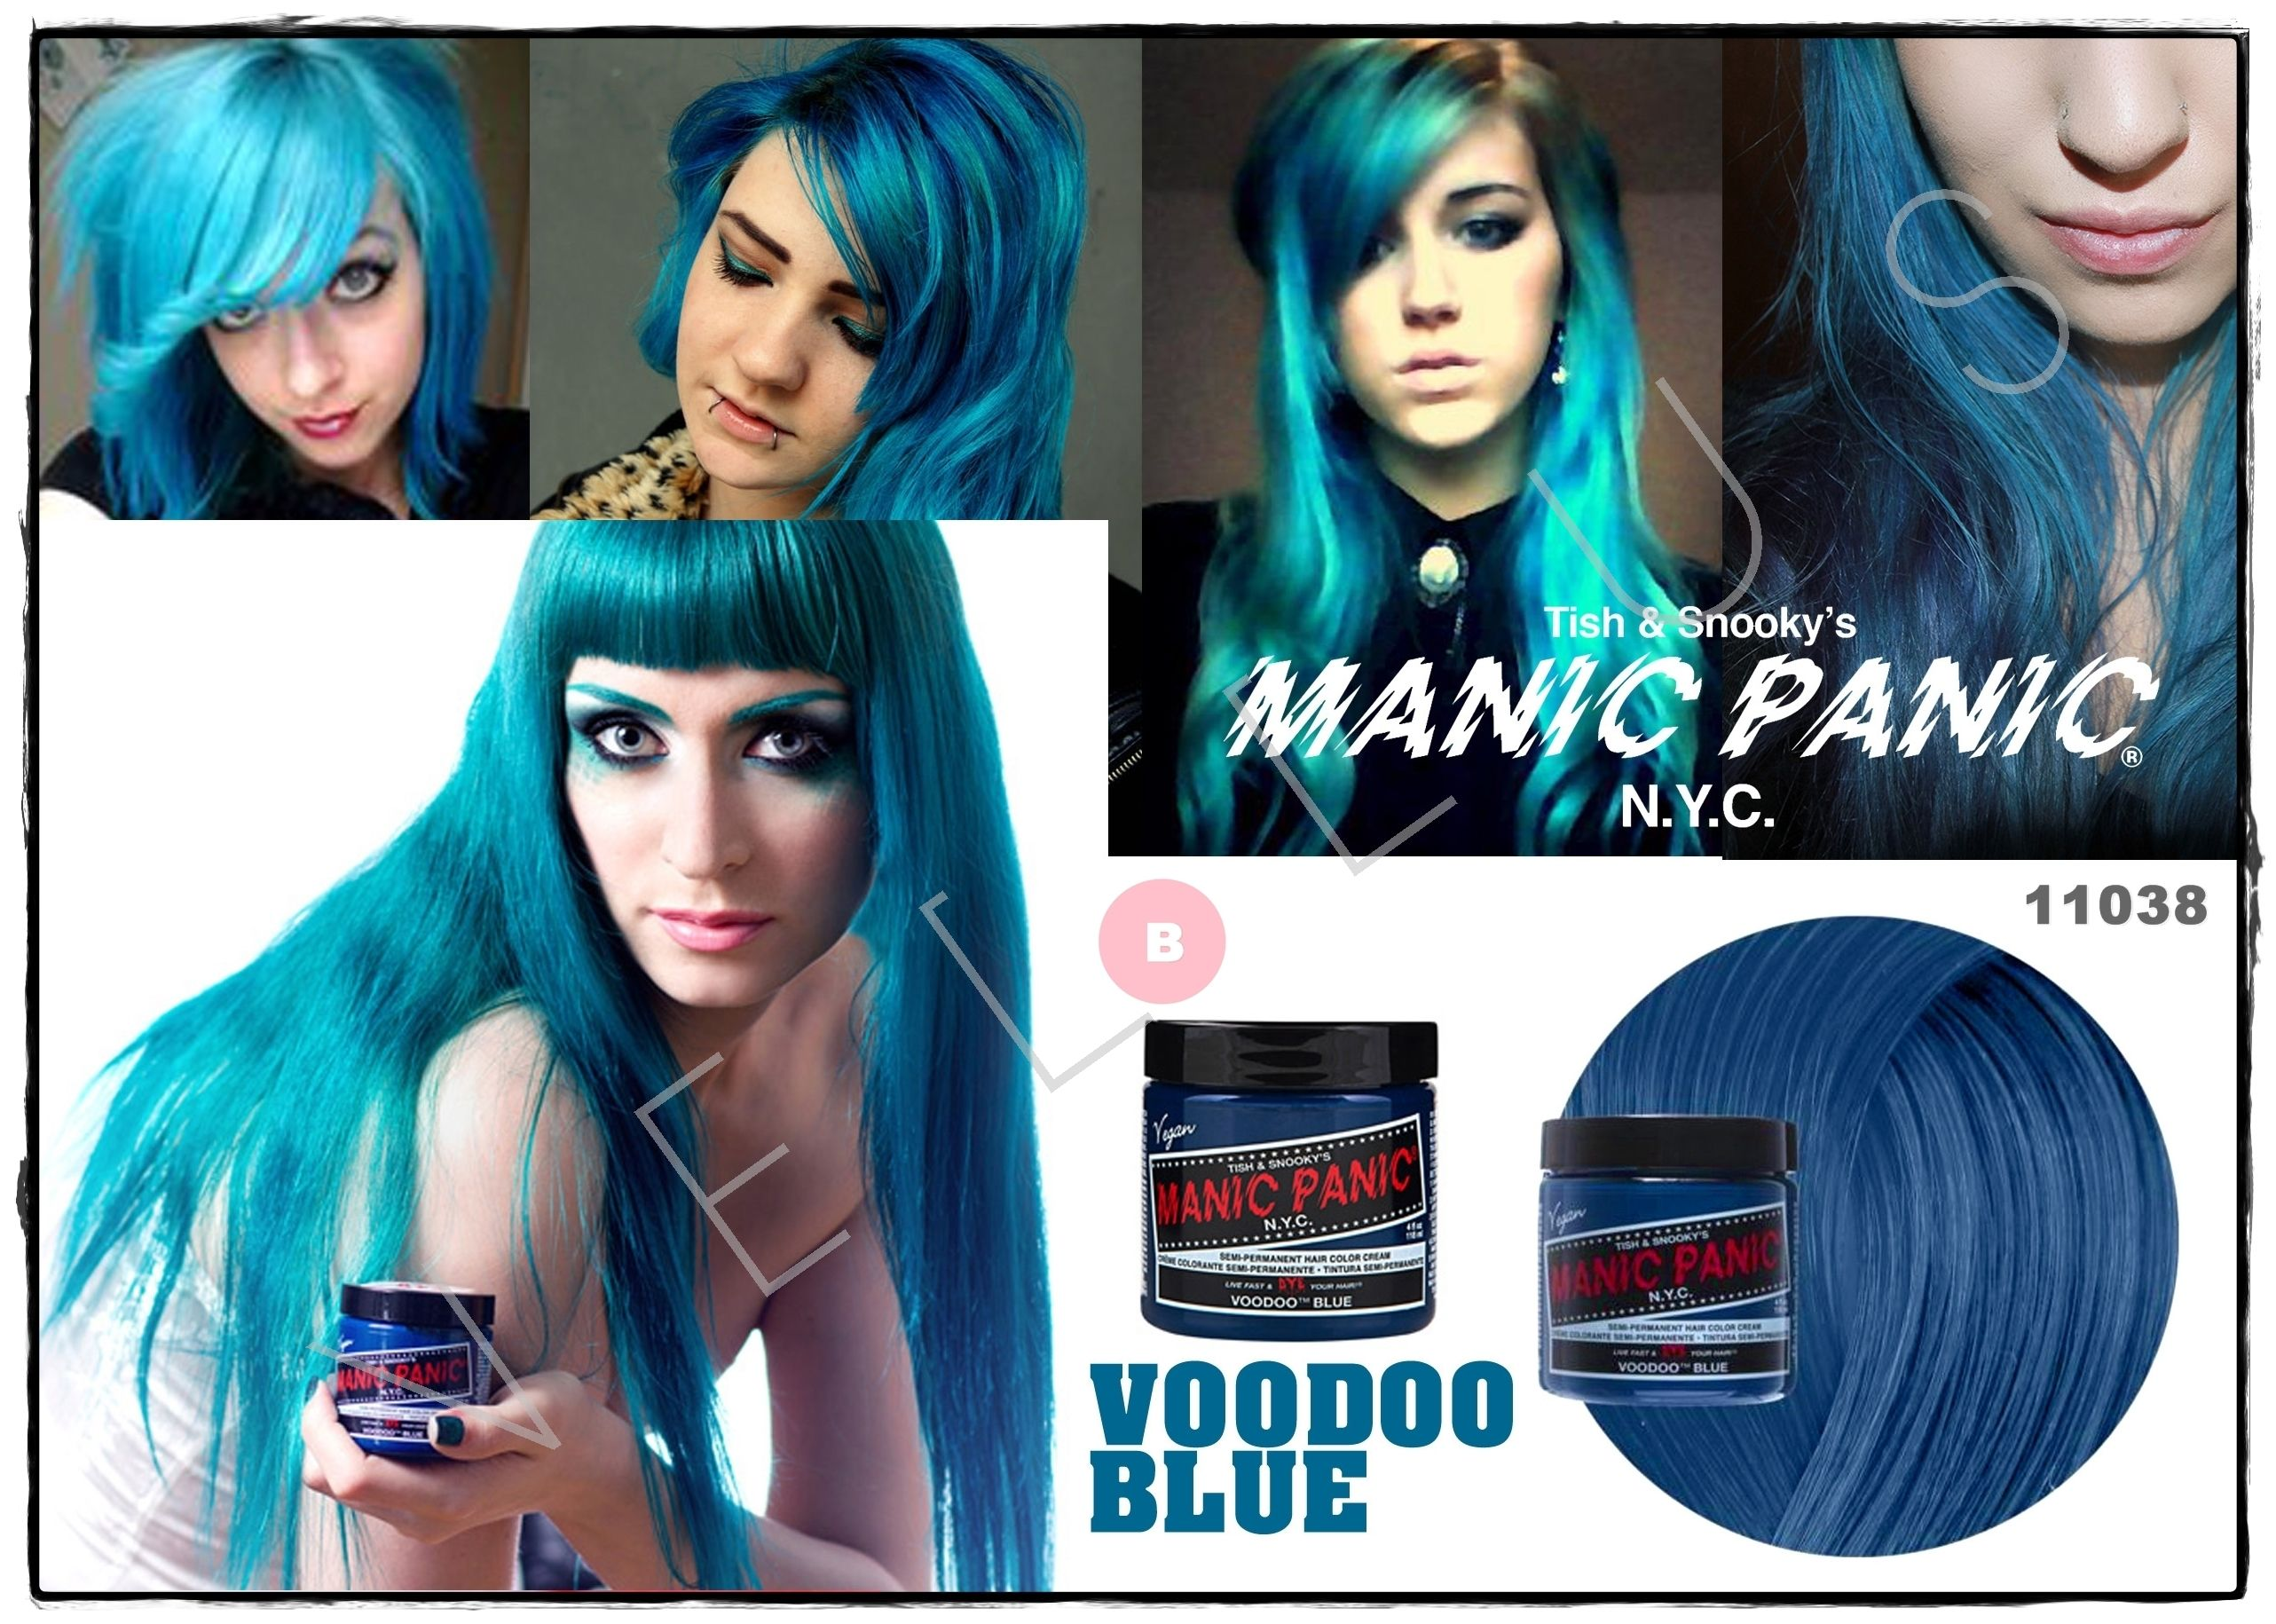 Manic Panic Classic Voodoo Blue Vellus Hair Studio 83a Tanjong Pagar Road S 088504 Tel 62246566 Hair Inspiration Color Cool Hair Color Permanent Hair Color